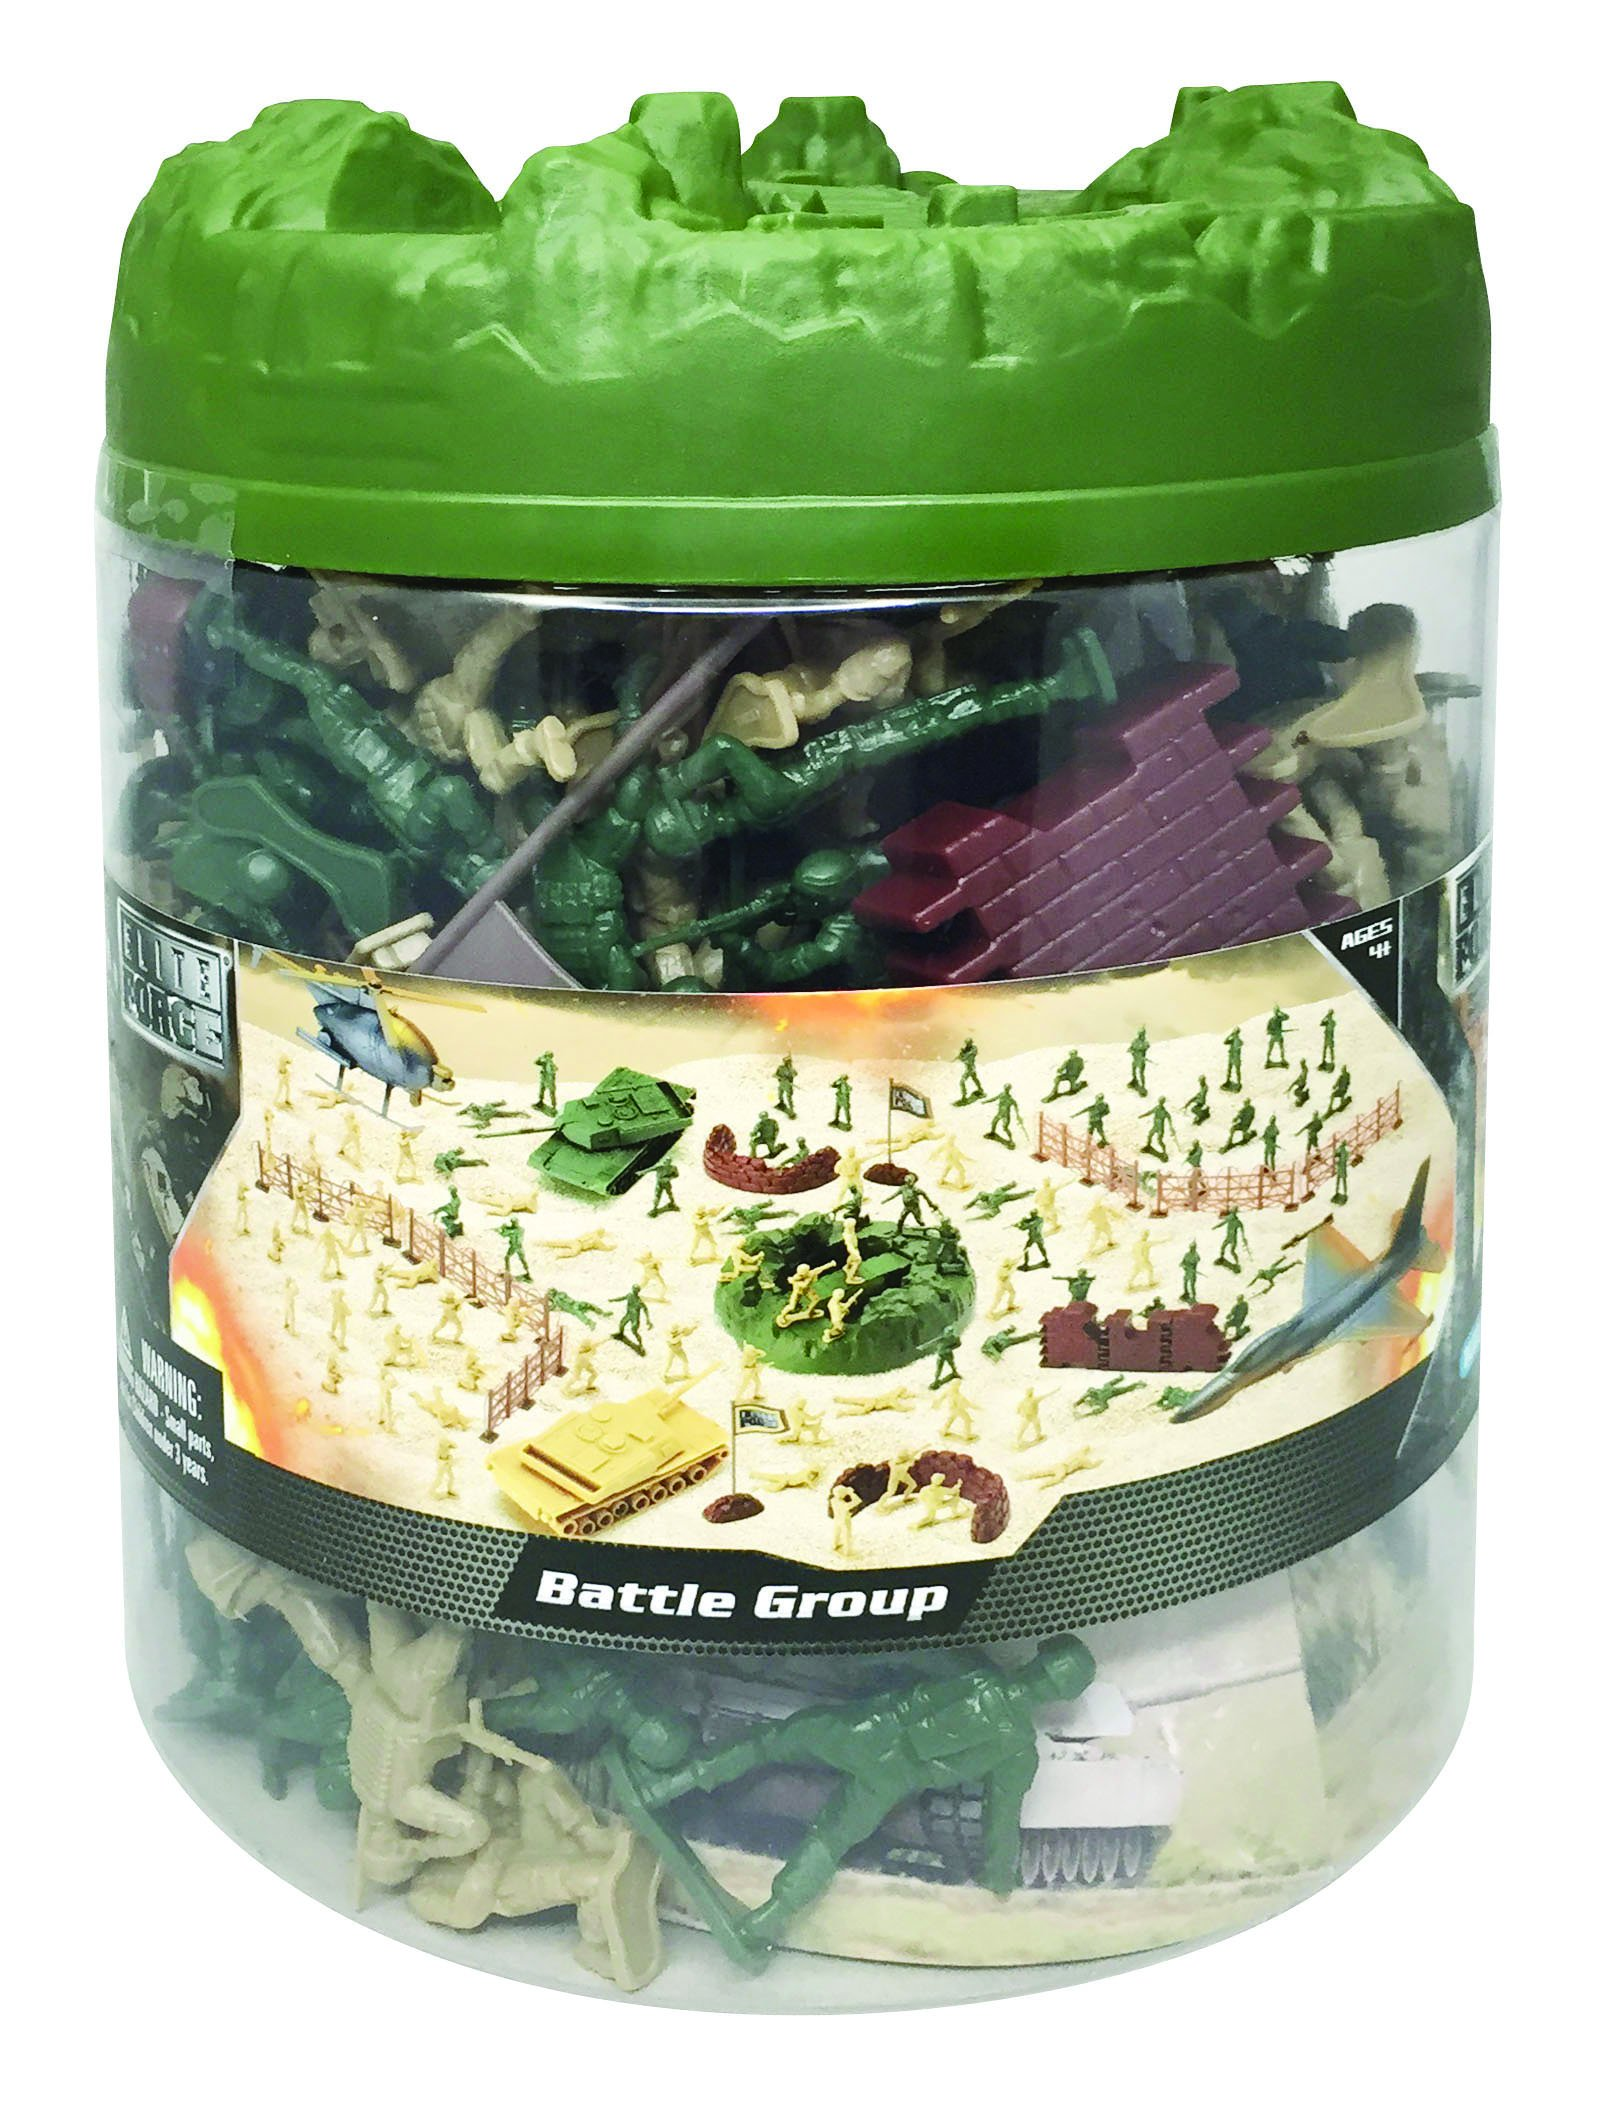 Elite Force Battle Group Army Men Play Bucket - 120 Piece Military Soldier Playset by Elite Force (Image #3)